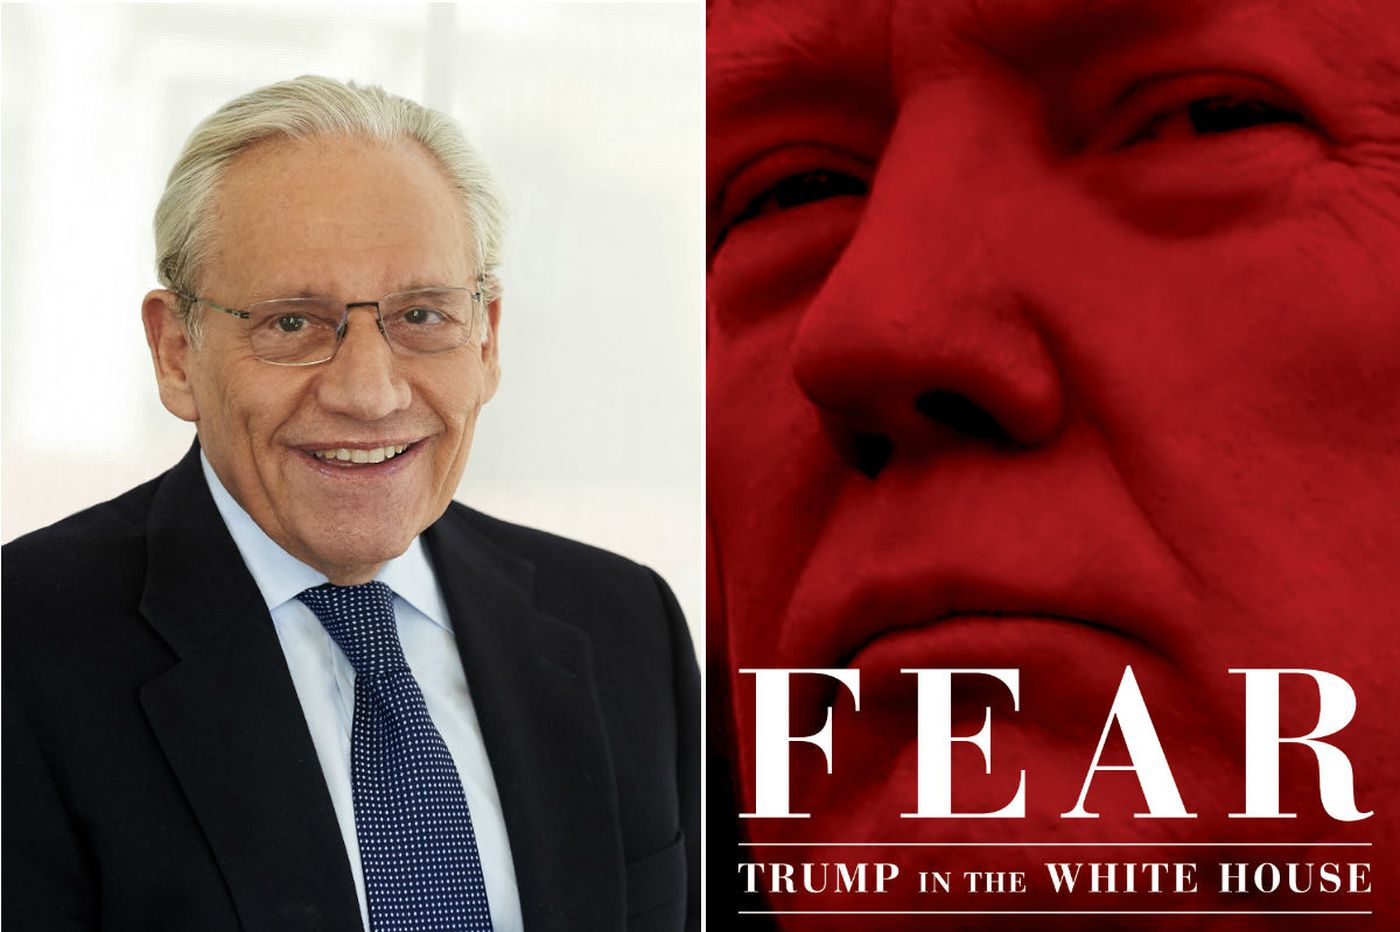 Bob Woodward gets emotional as he preps for Philly visit: 'We have to wake up.'